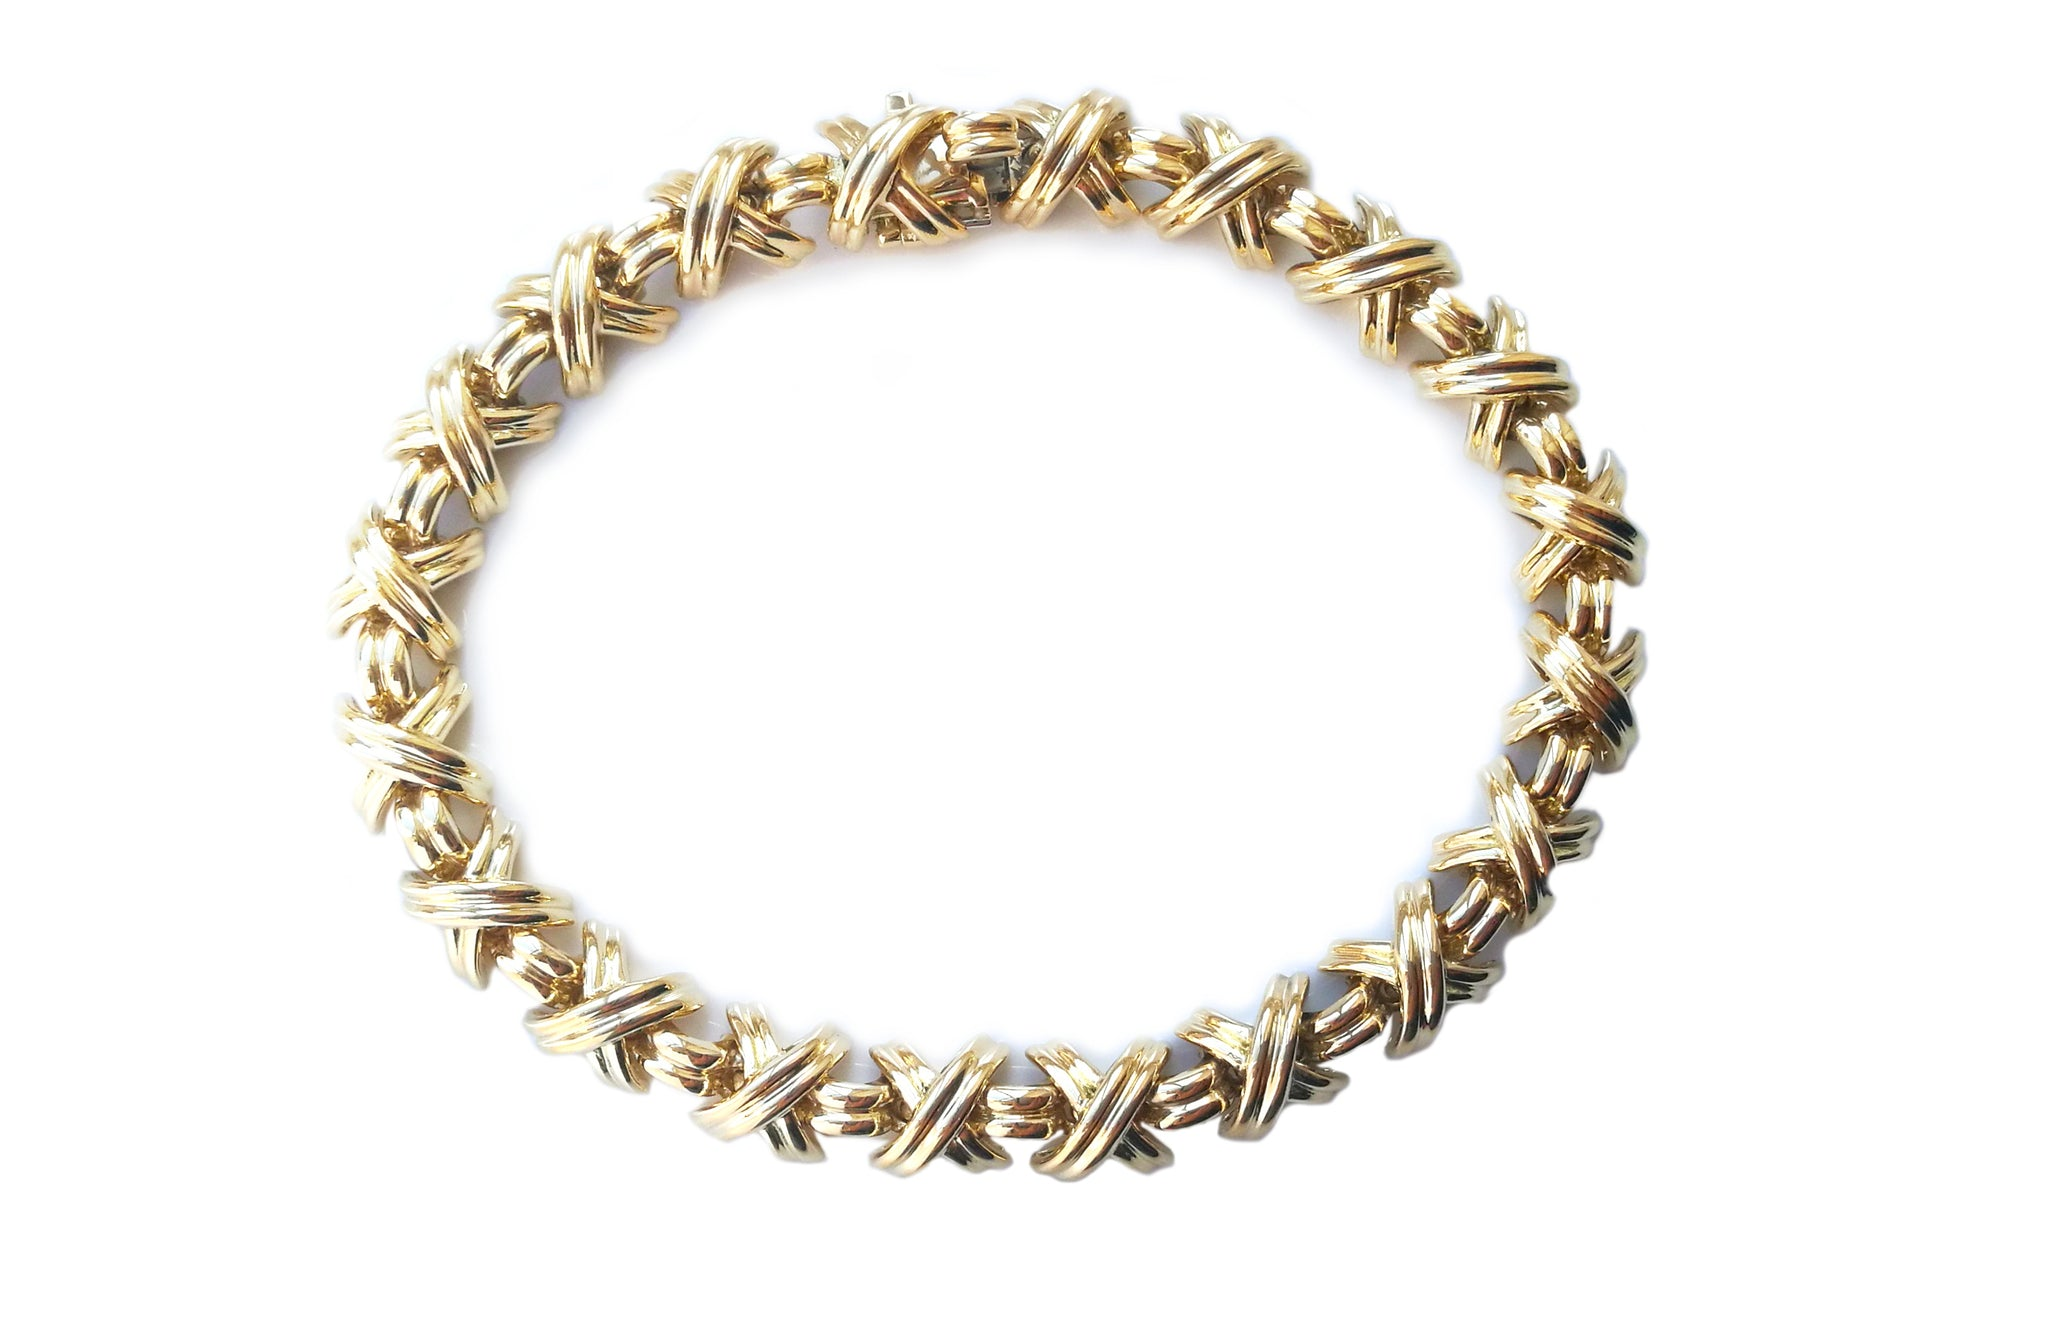 Vintage Tiffany & Co Signature X Bracelet 18k Yellow Gold 8 inches 31g